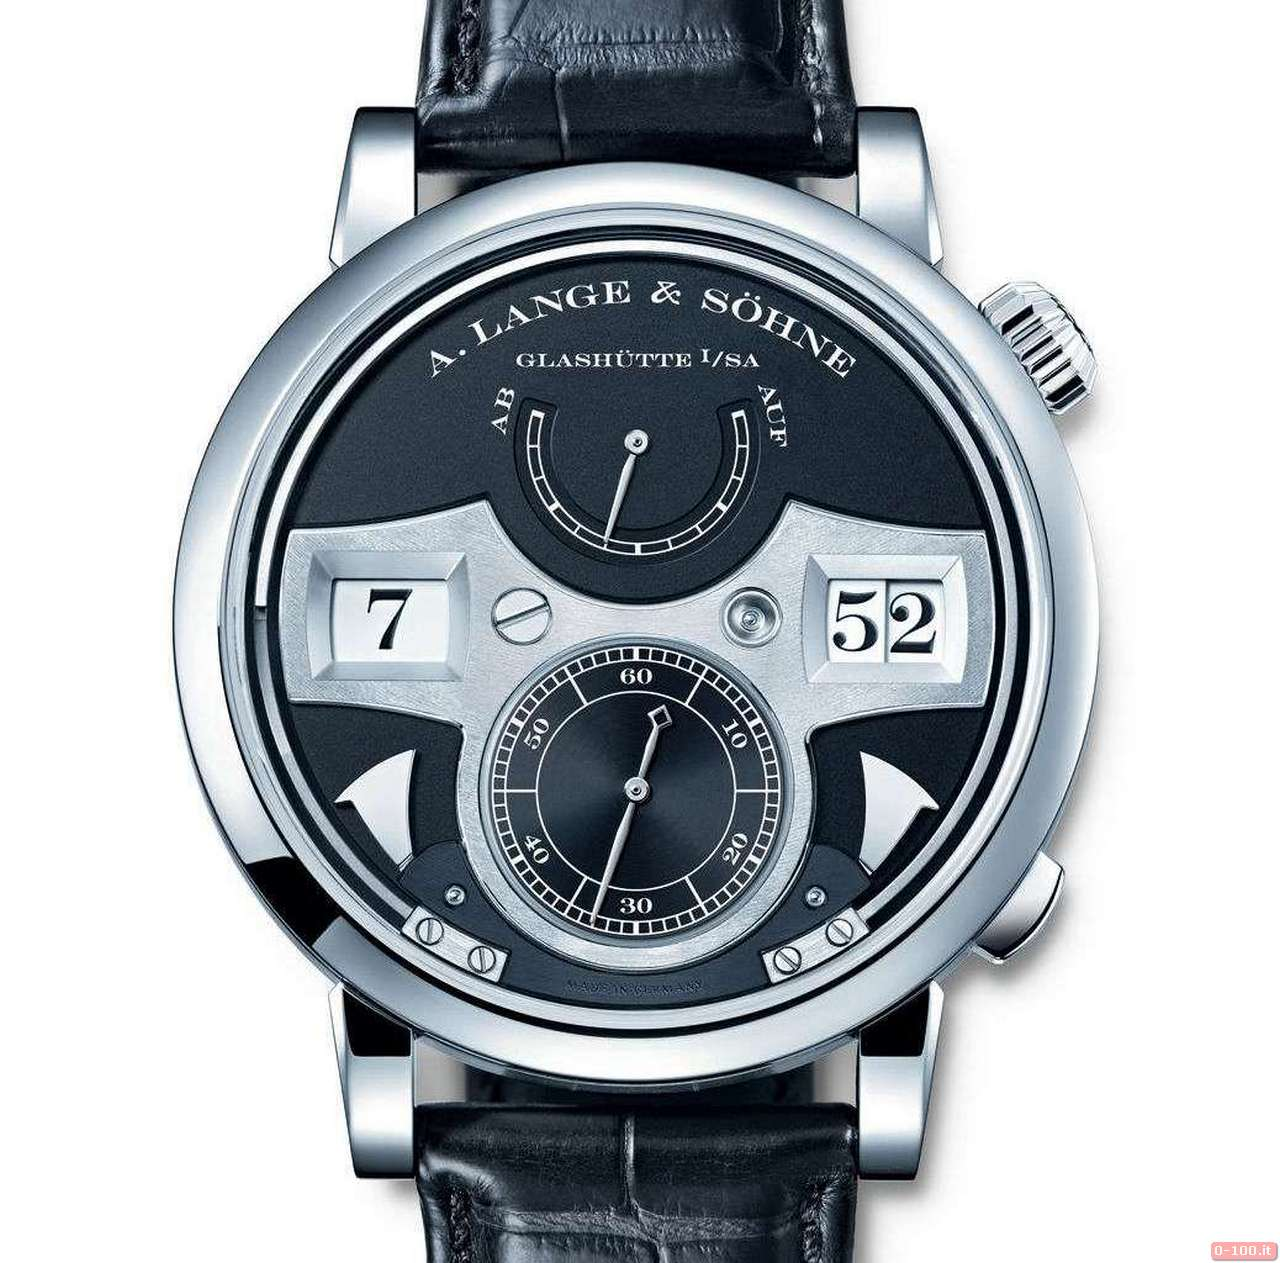 sihh-2014-lange-sohne-lange-zeitwerk-striking-time-prezzo-price_0-1007